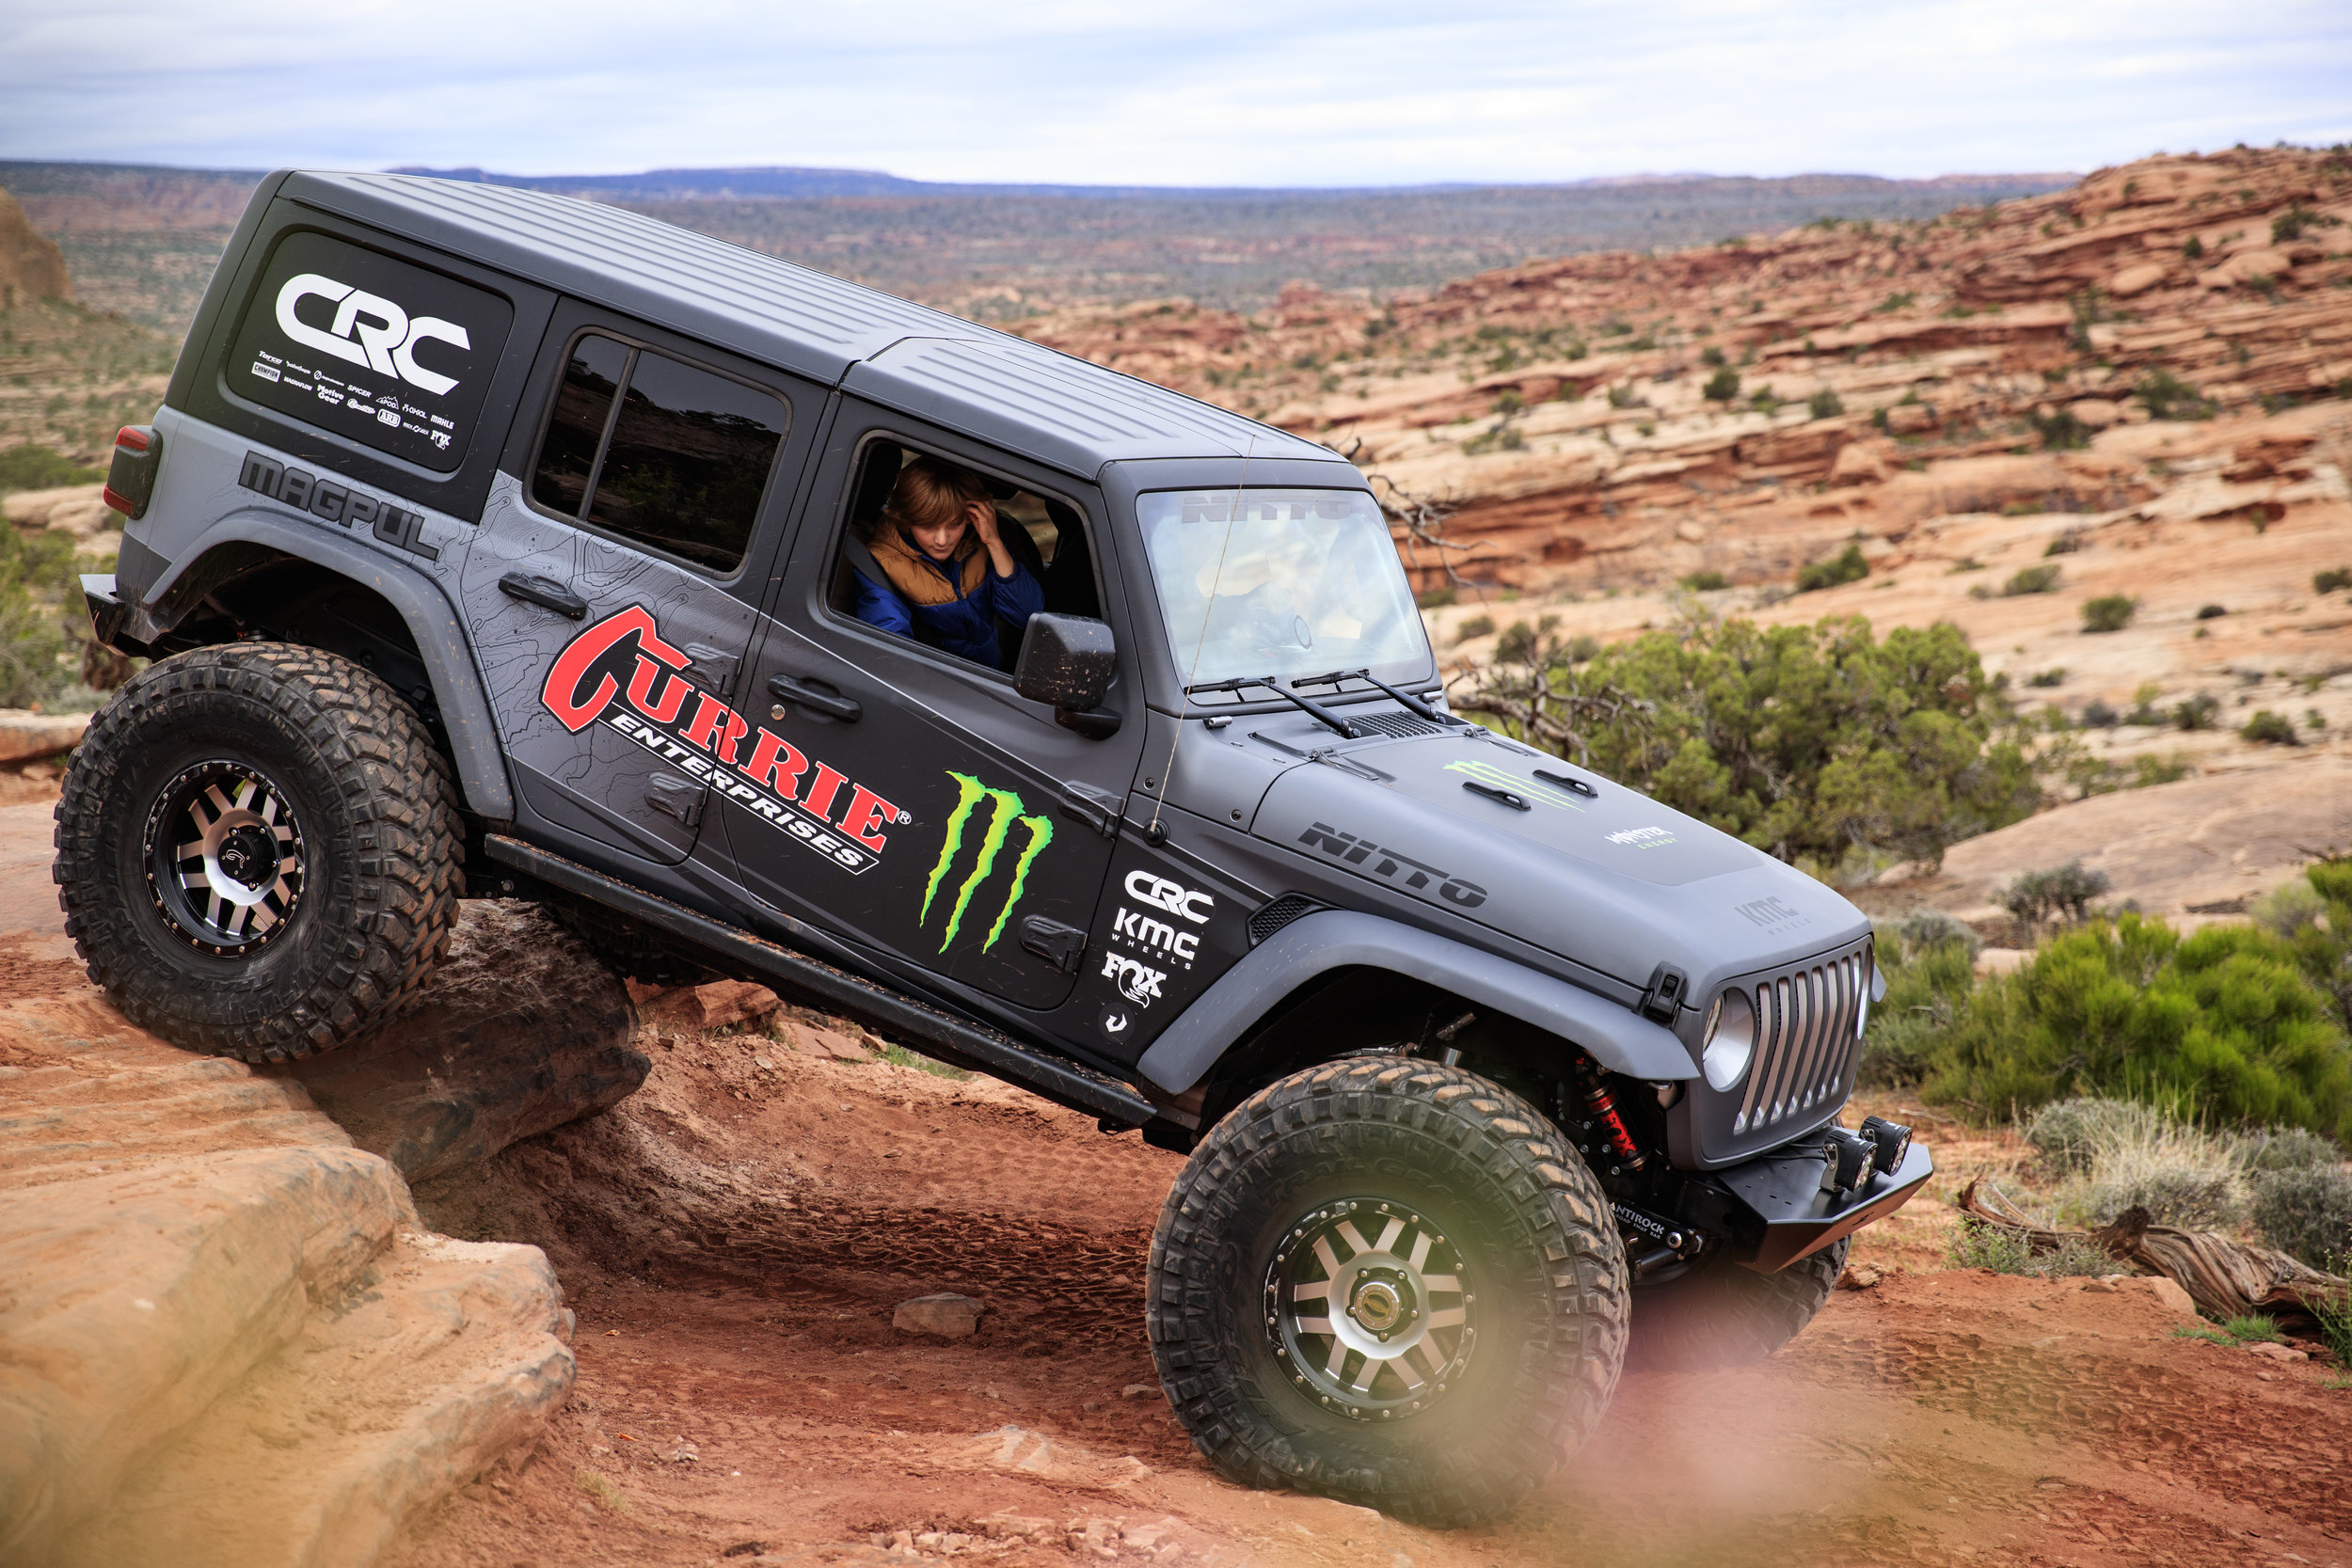 4_17_CaseyCurrie_MonsterCurrieJeepJL_MoabEJS_GoldBarRim_006.jpg